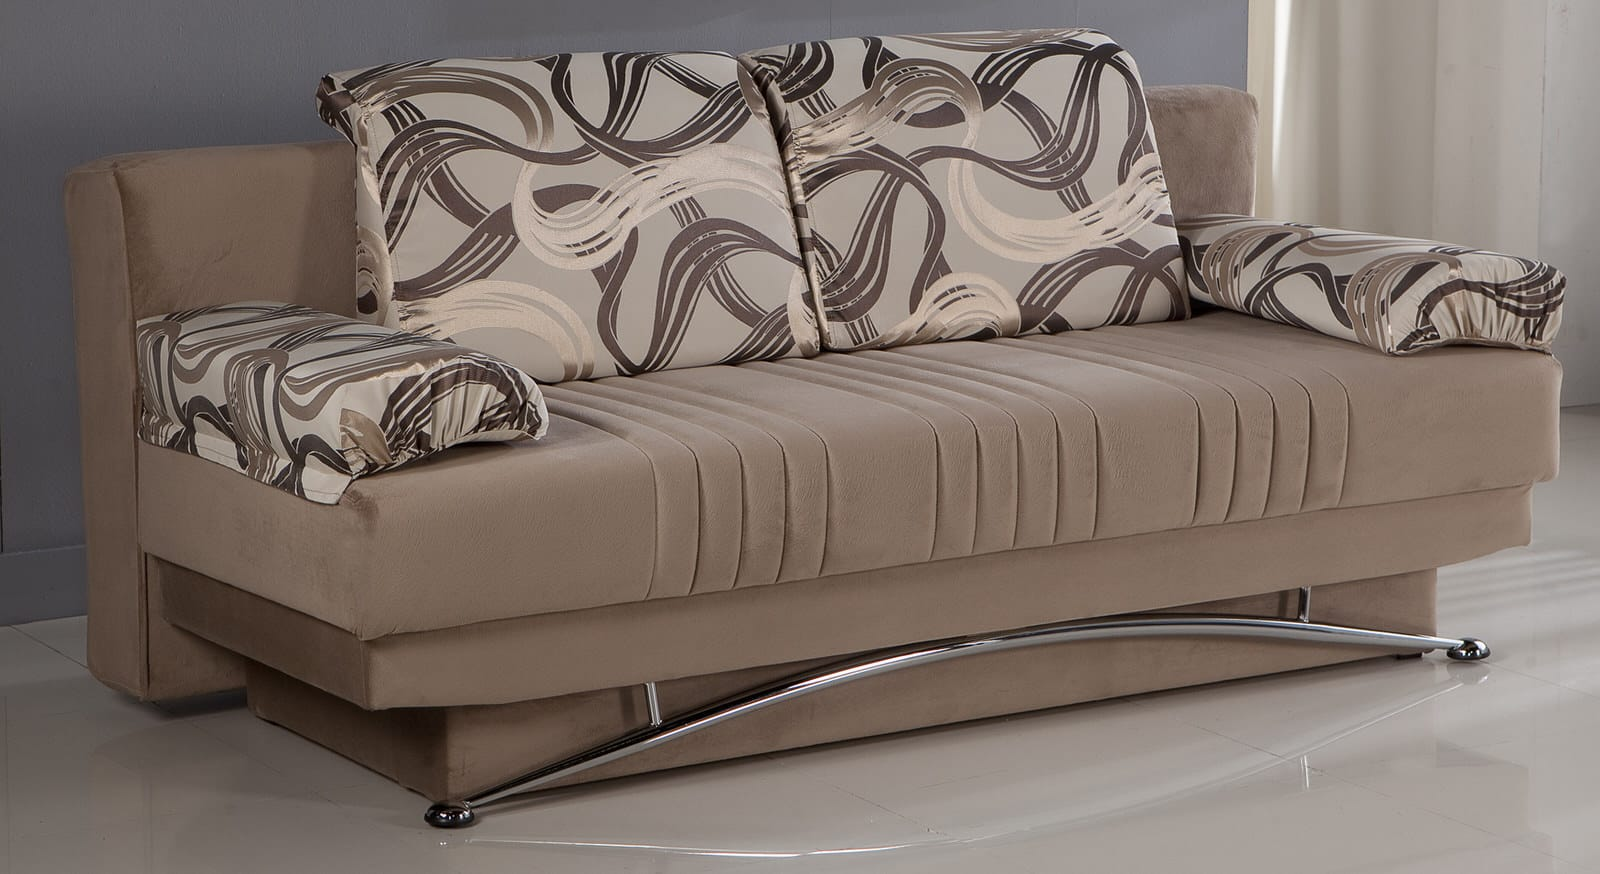 Floor Sample Fantasy Best Vizon Convertible Sofa Bed by ...